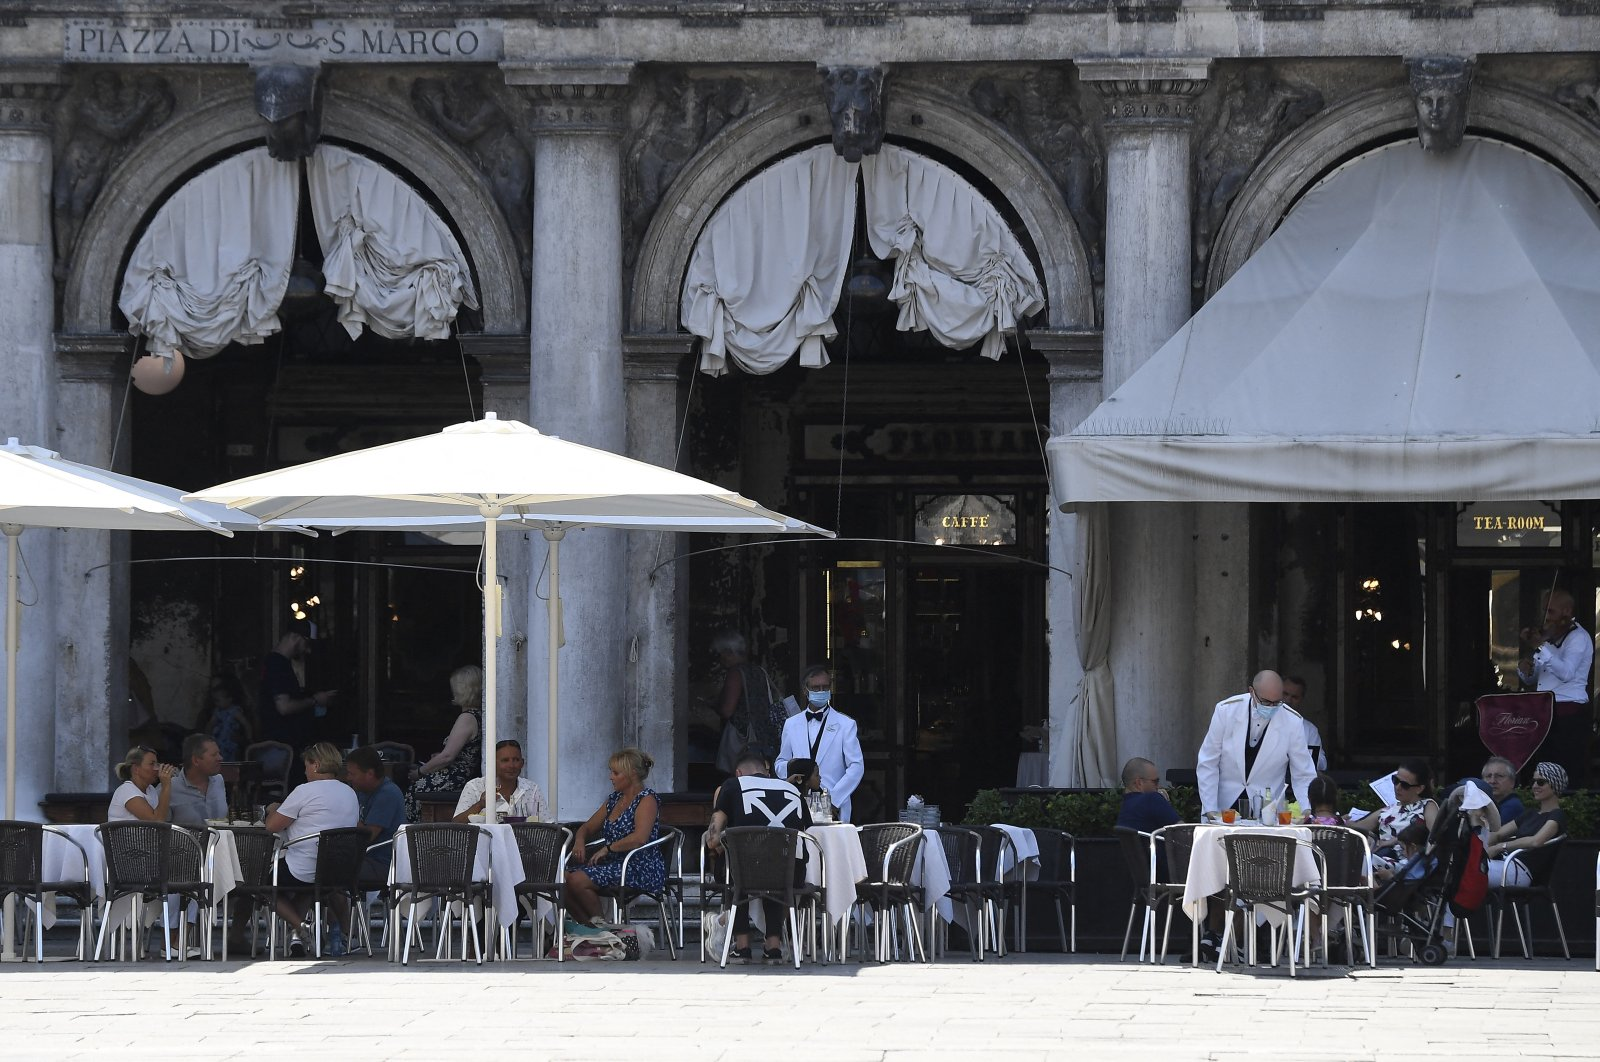 The first umbrellas were mounted that will cover the spaces in front of the premises, enlarged to facilitate the safe arrangement of the tables according to the safety rules on coronavirus, at San Marco square in Venice, Italy, on June 27, 2020. (Reuters Photo)